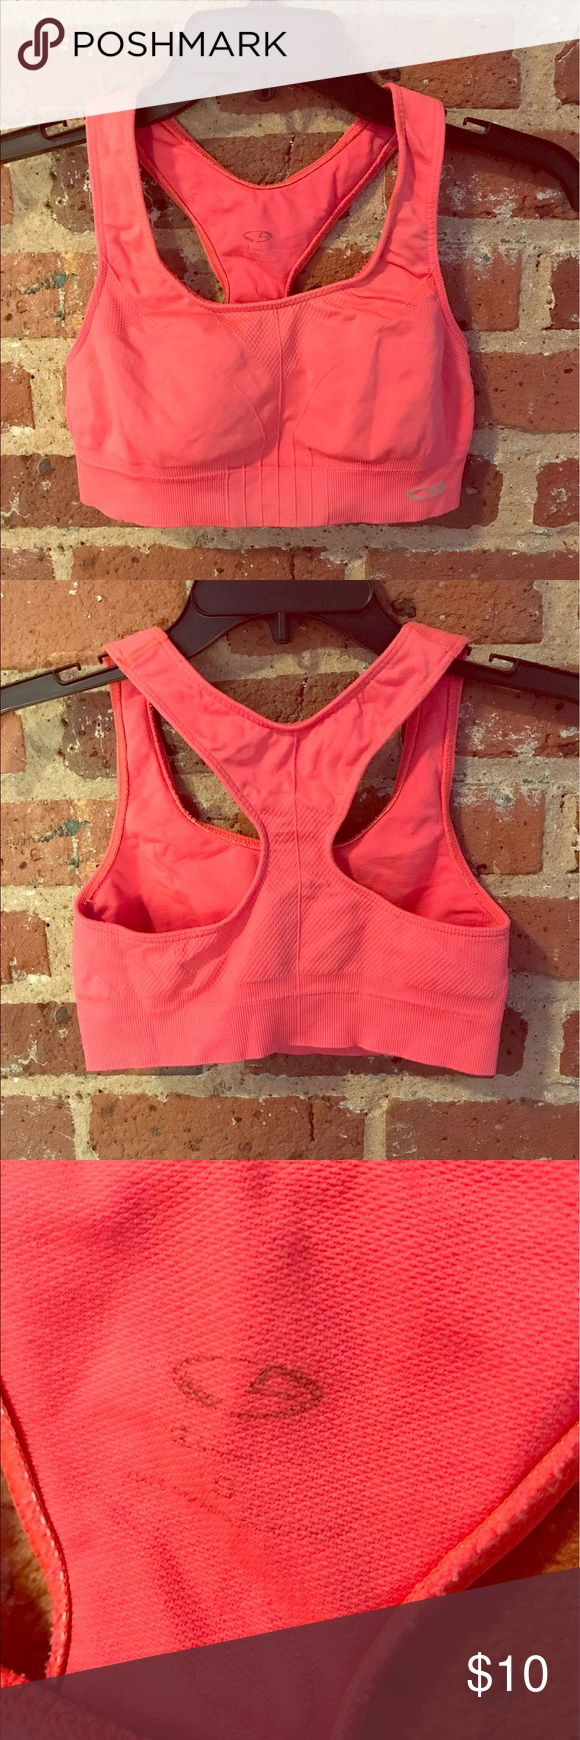 Neon Orange Sports Bra, Size Small Sports bra from Target in a bright orange color that makes everyone look tan! It is a size small and is made very soft material. Champion Intimates & Sleepwear Bras